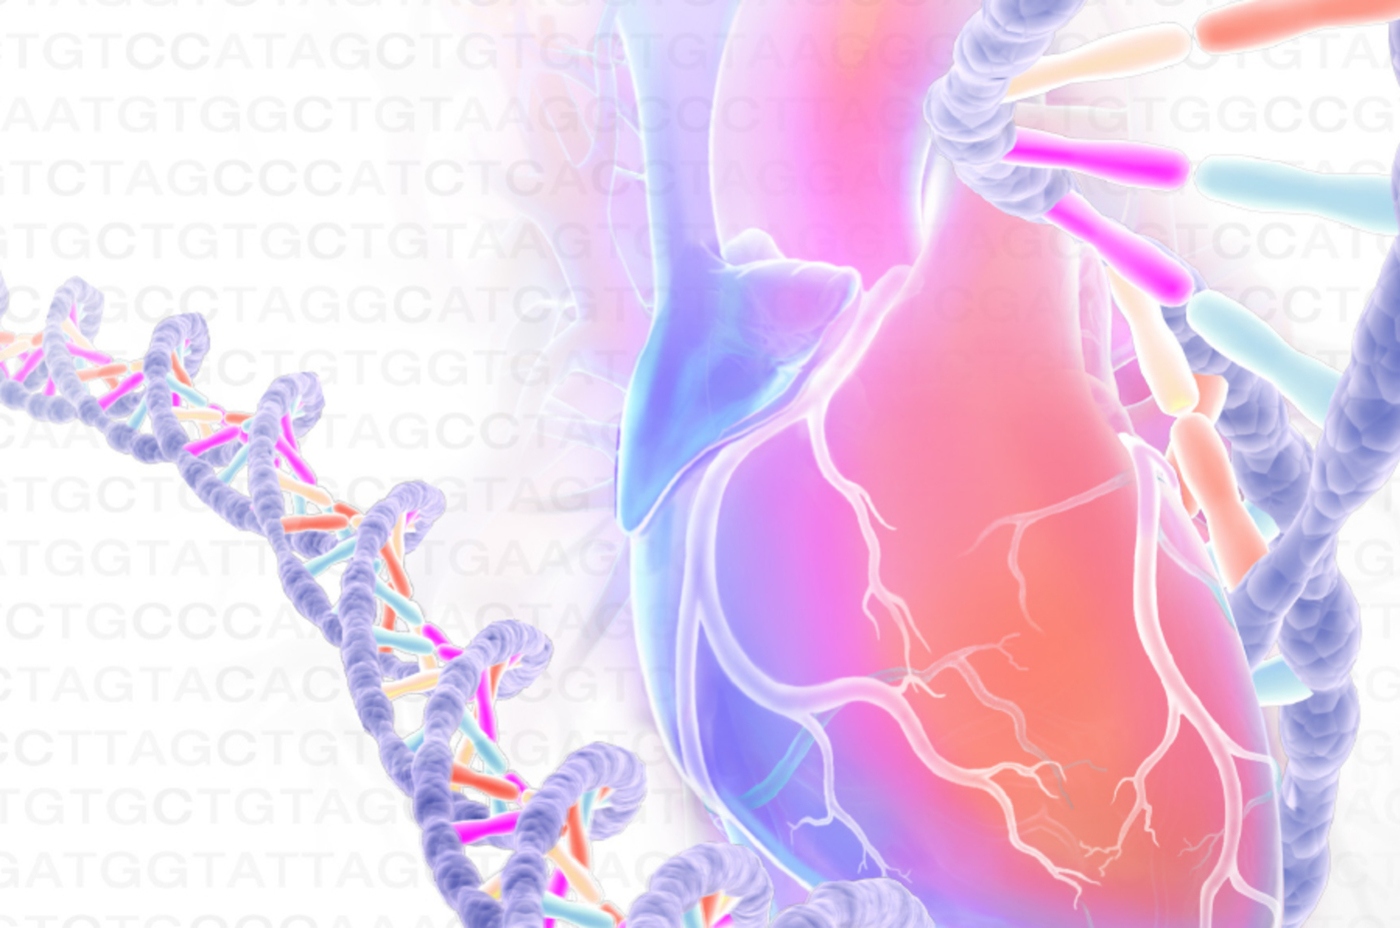 The Genetics of Heart & Vascular Disease